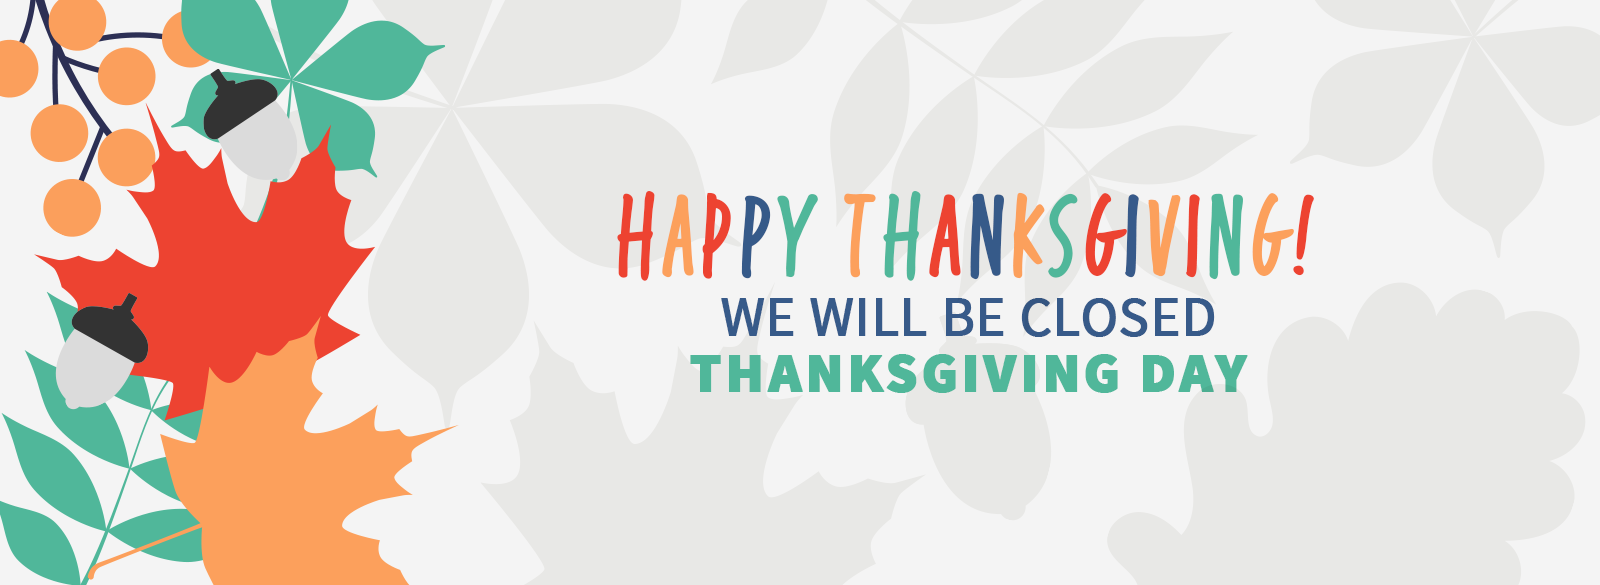 TriAm_Thanksgiving_Banner_112320.png